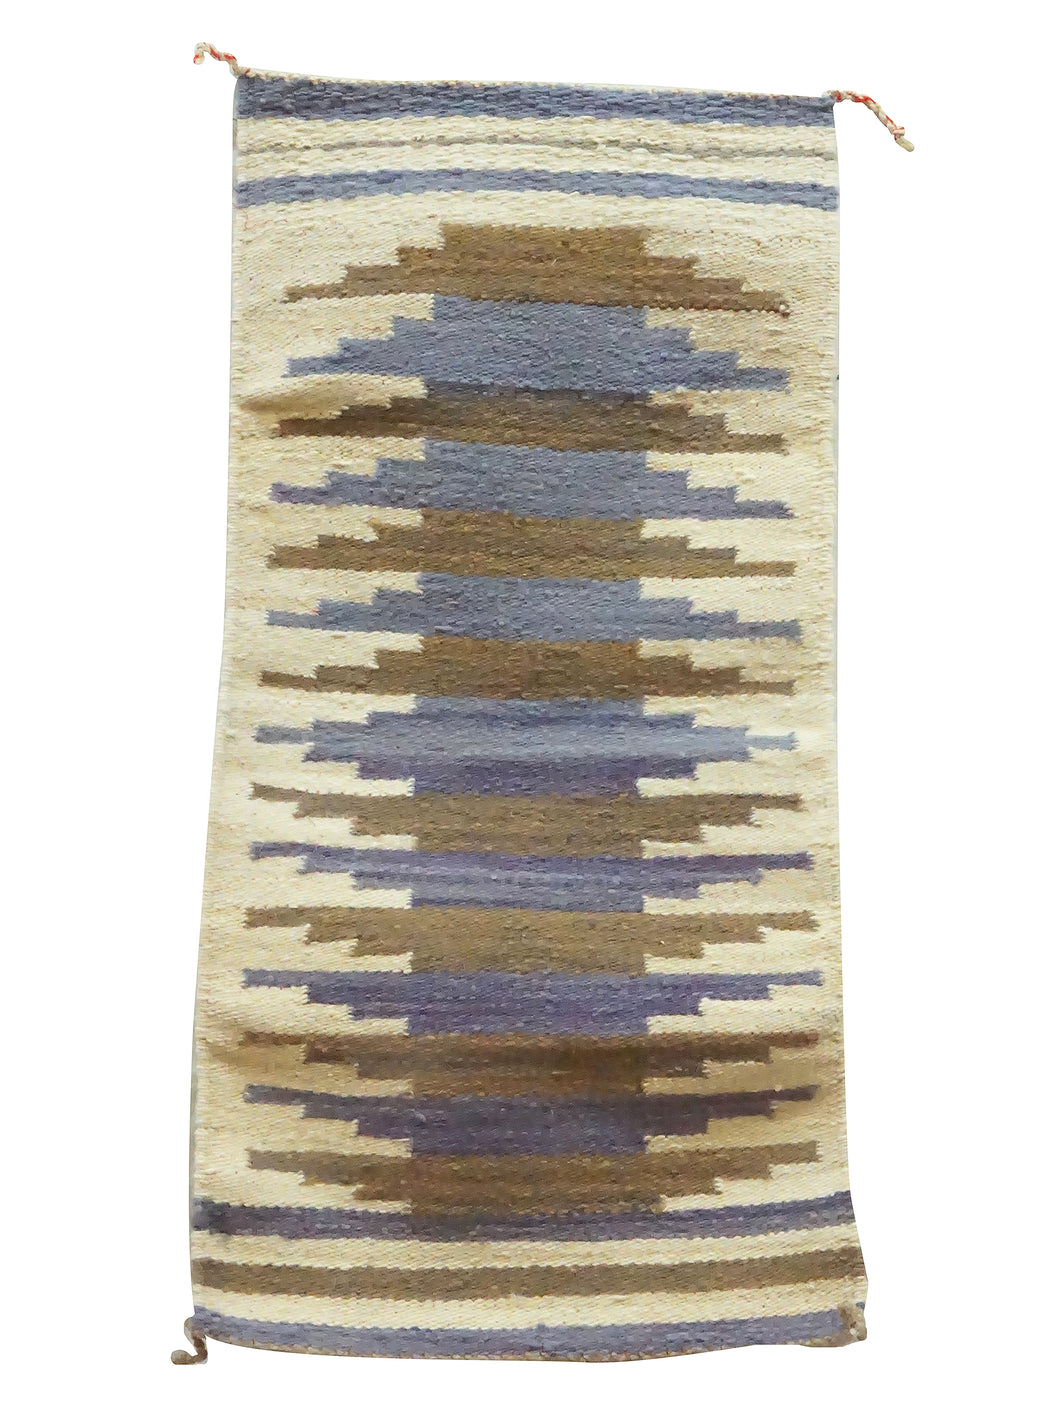 Gallup Throw Rug, Blues, Browns, Navajo Handmade, 37